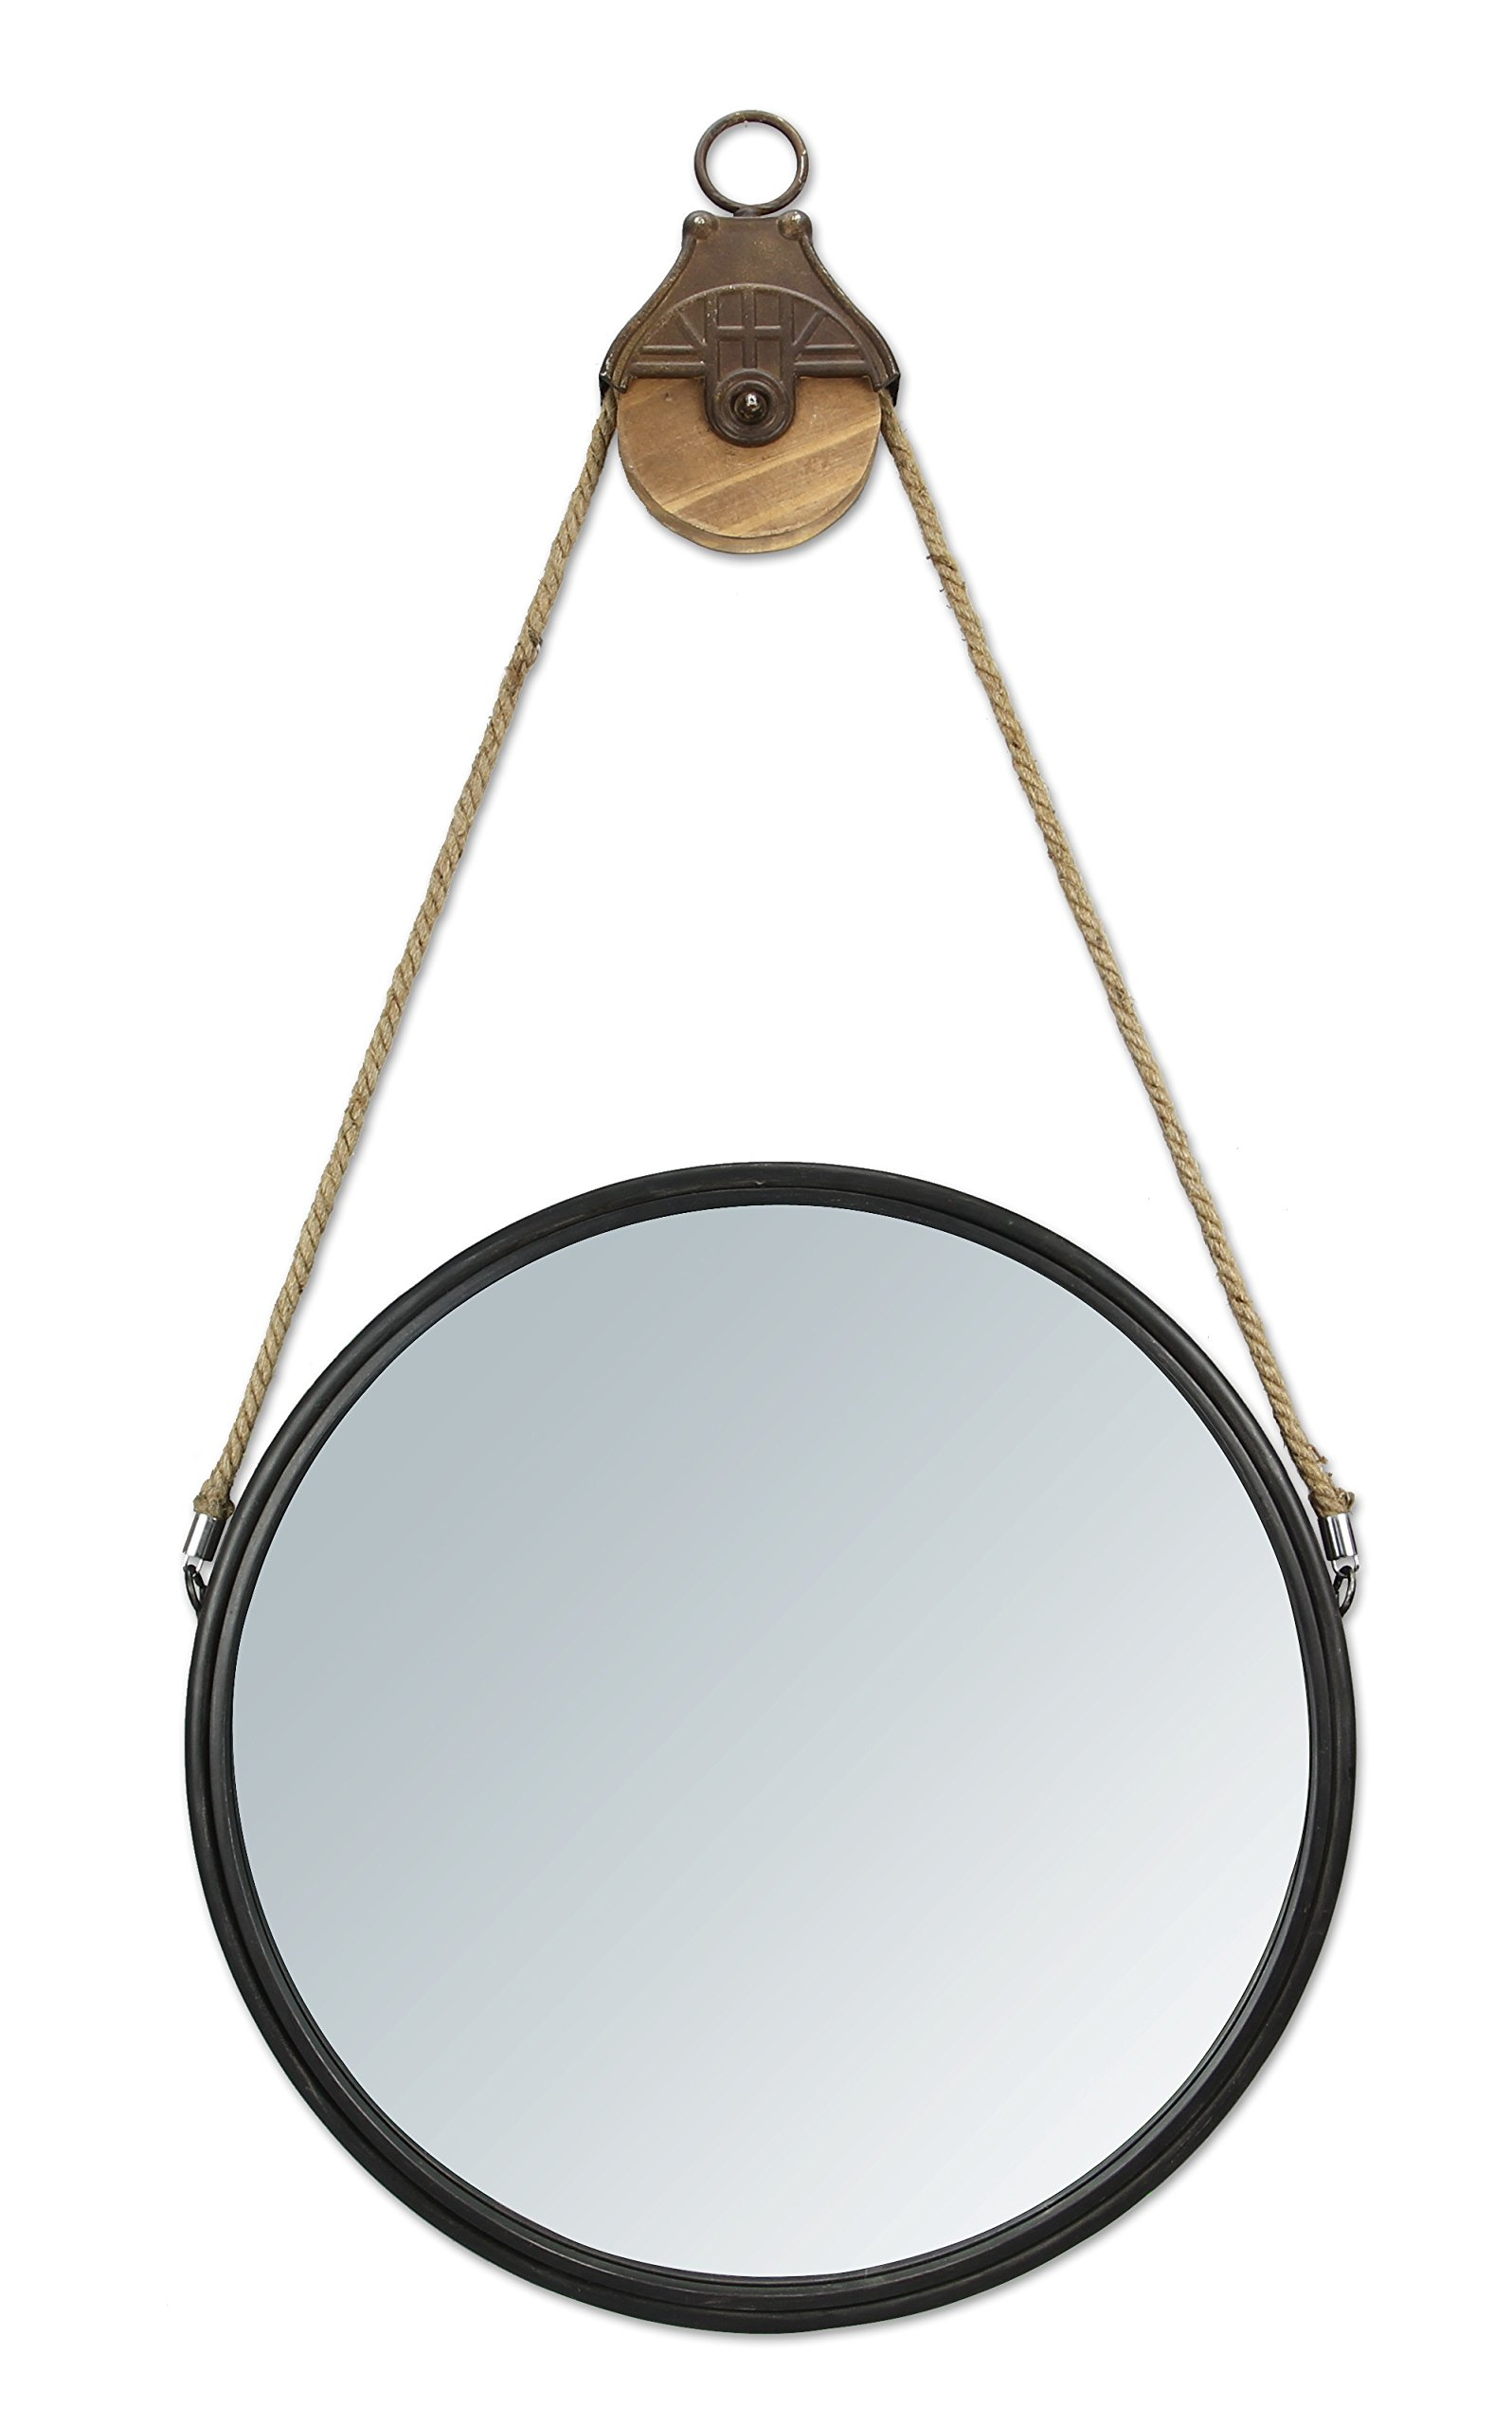 "Young's 21"" x 2"" x 40.25"" Inc Metal Pulley Round Wall Mirror - Measures 21x 2x 40.25 Made of metal High Quality item - bathroom-mirrors, bathroom-accessories, bathroom - 71hHFtlFZfL -"